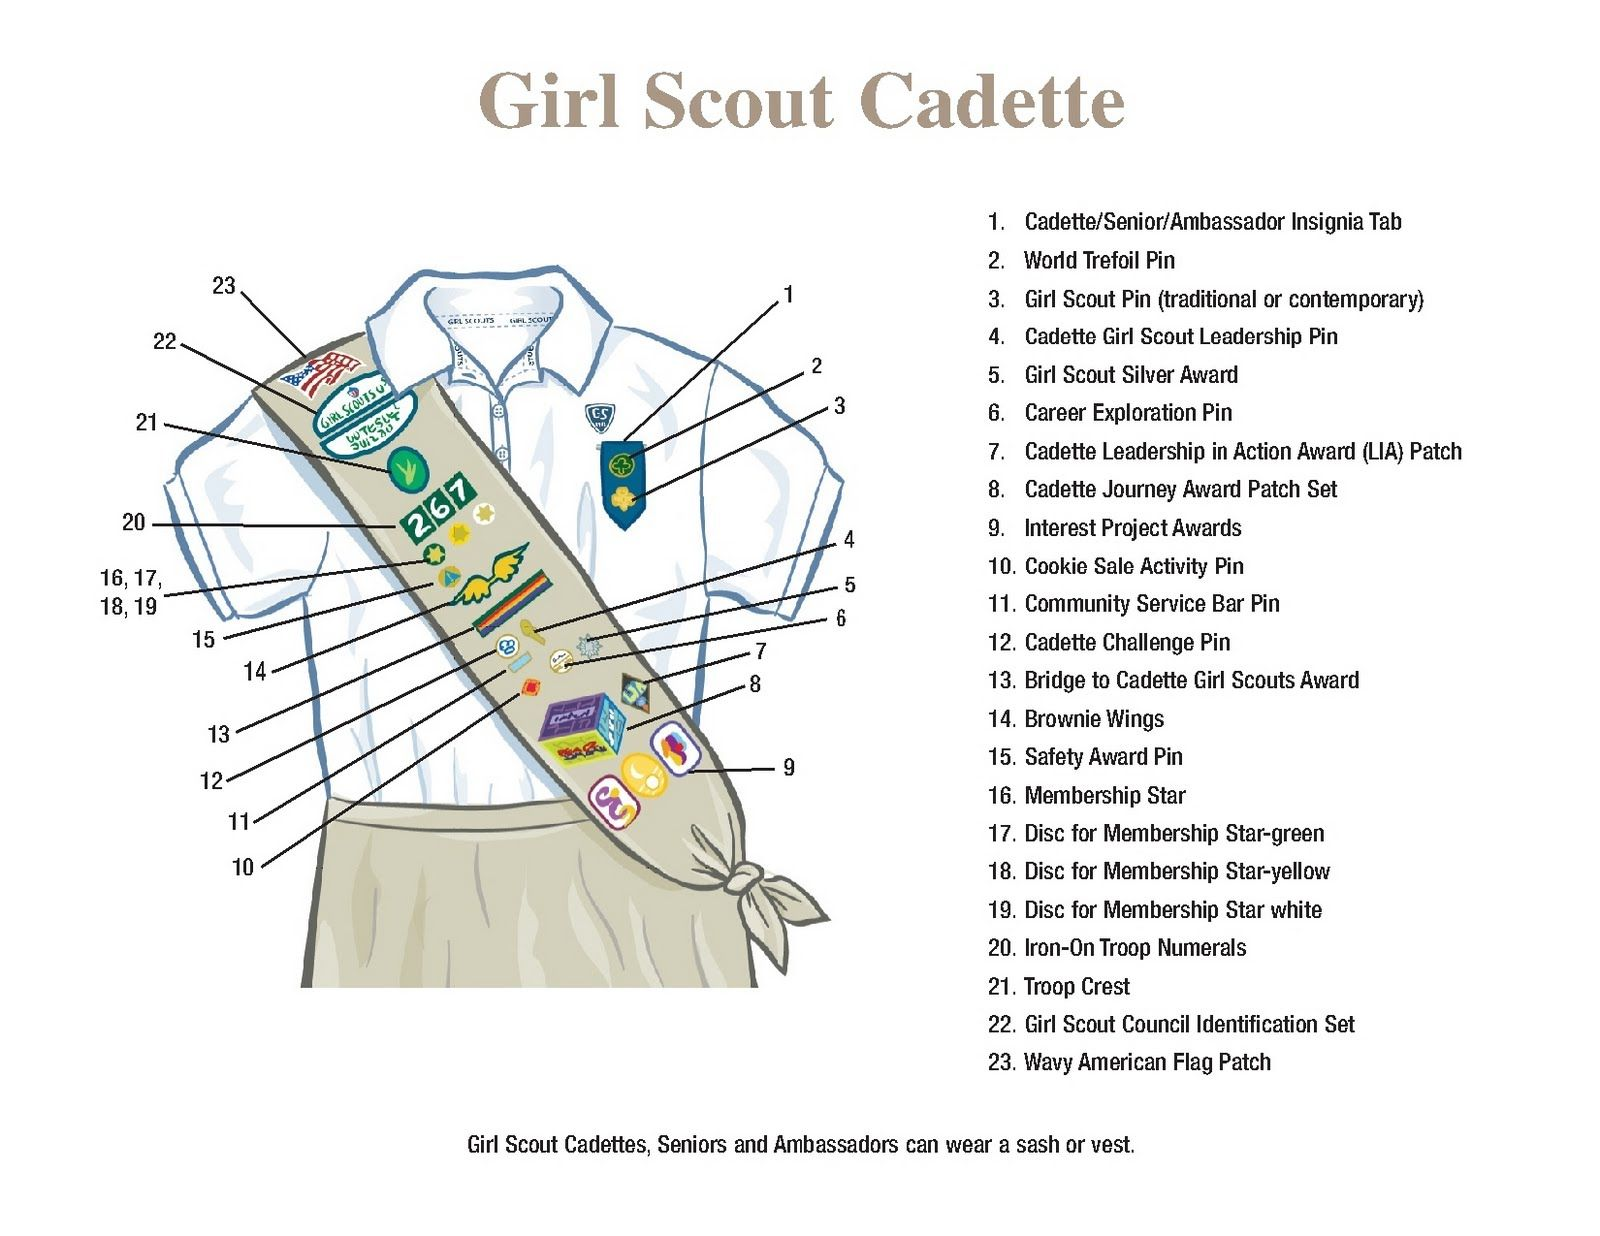 Girl Scout Cadette Sash Layout